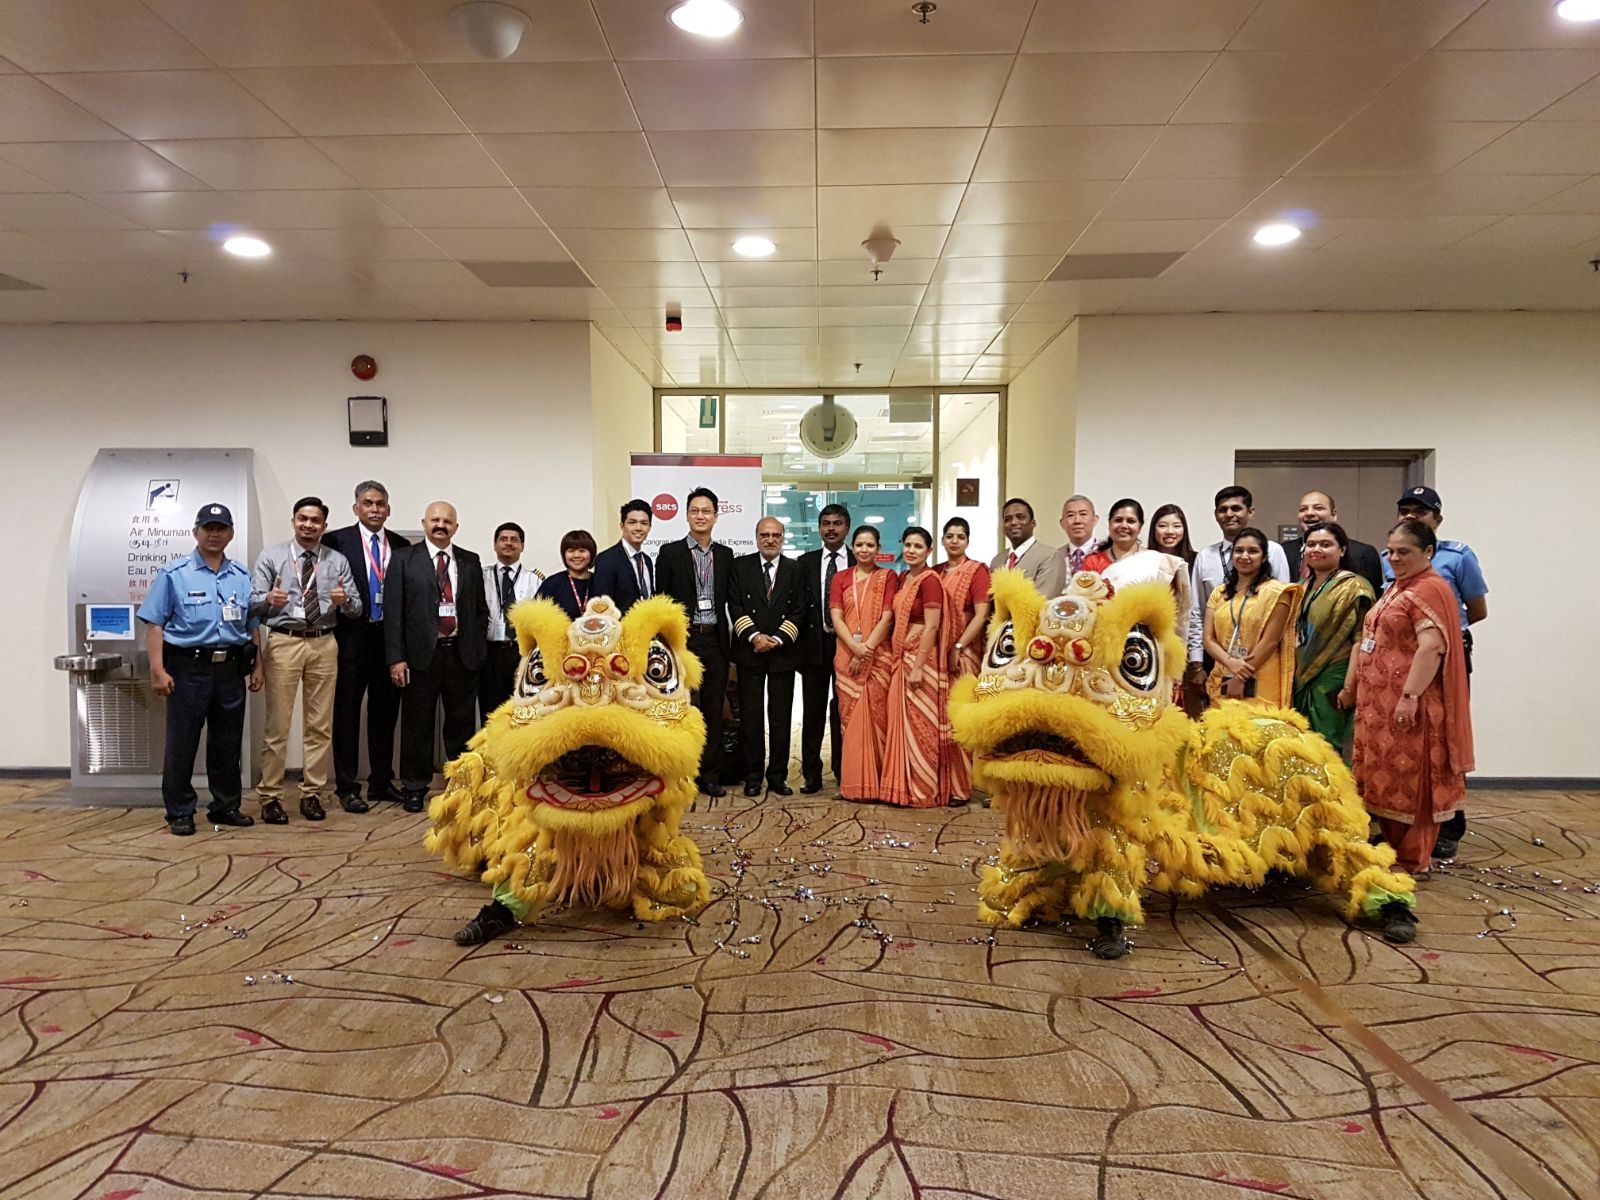 Beaming members of the Air India and Changi Airport Group (CAG) teams pose with the lions considered auspicious at business opening events in the Singapore Chinese culture.